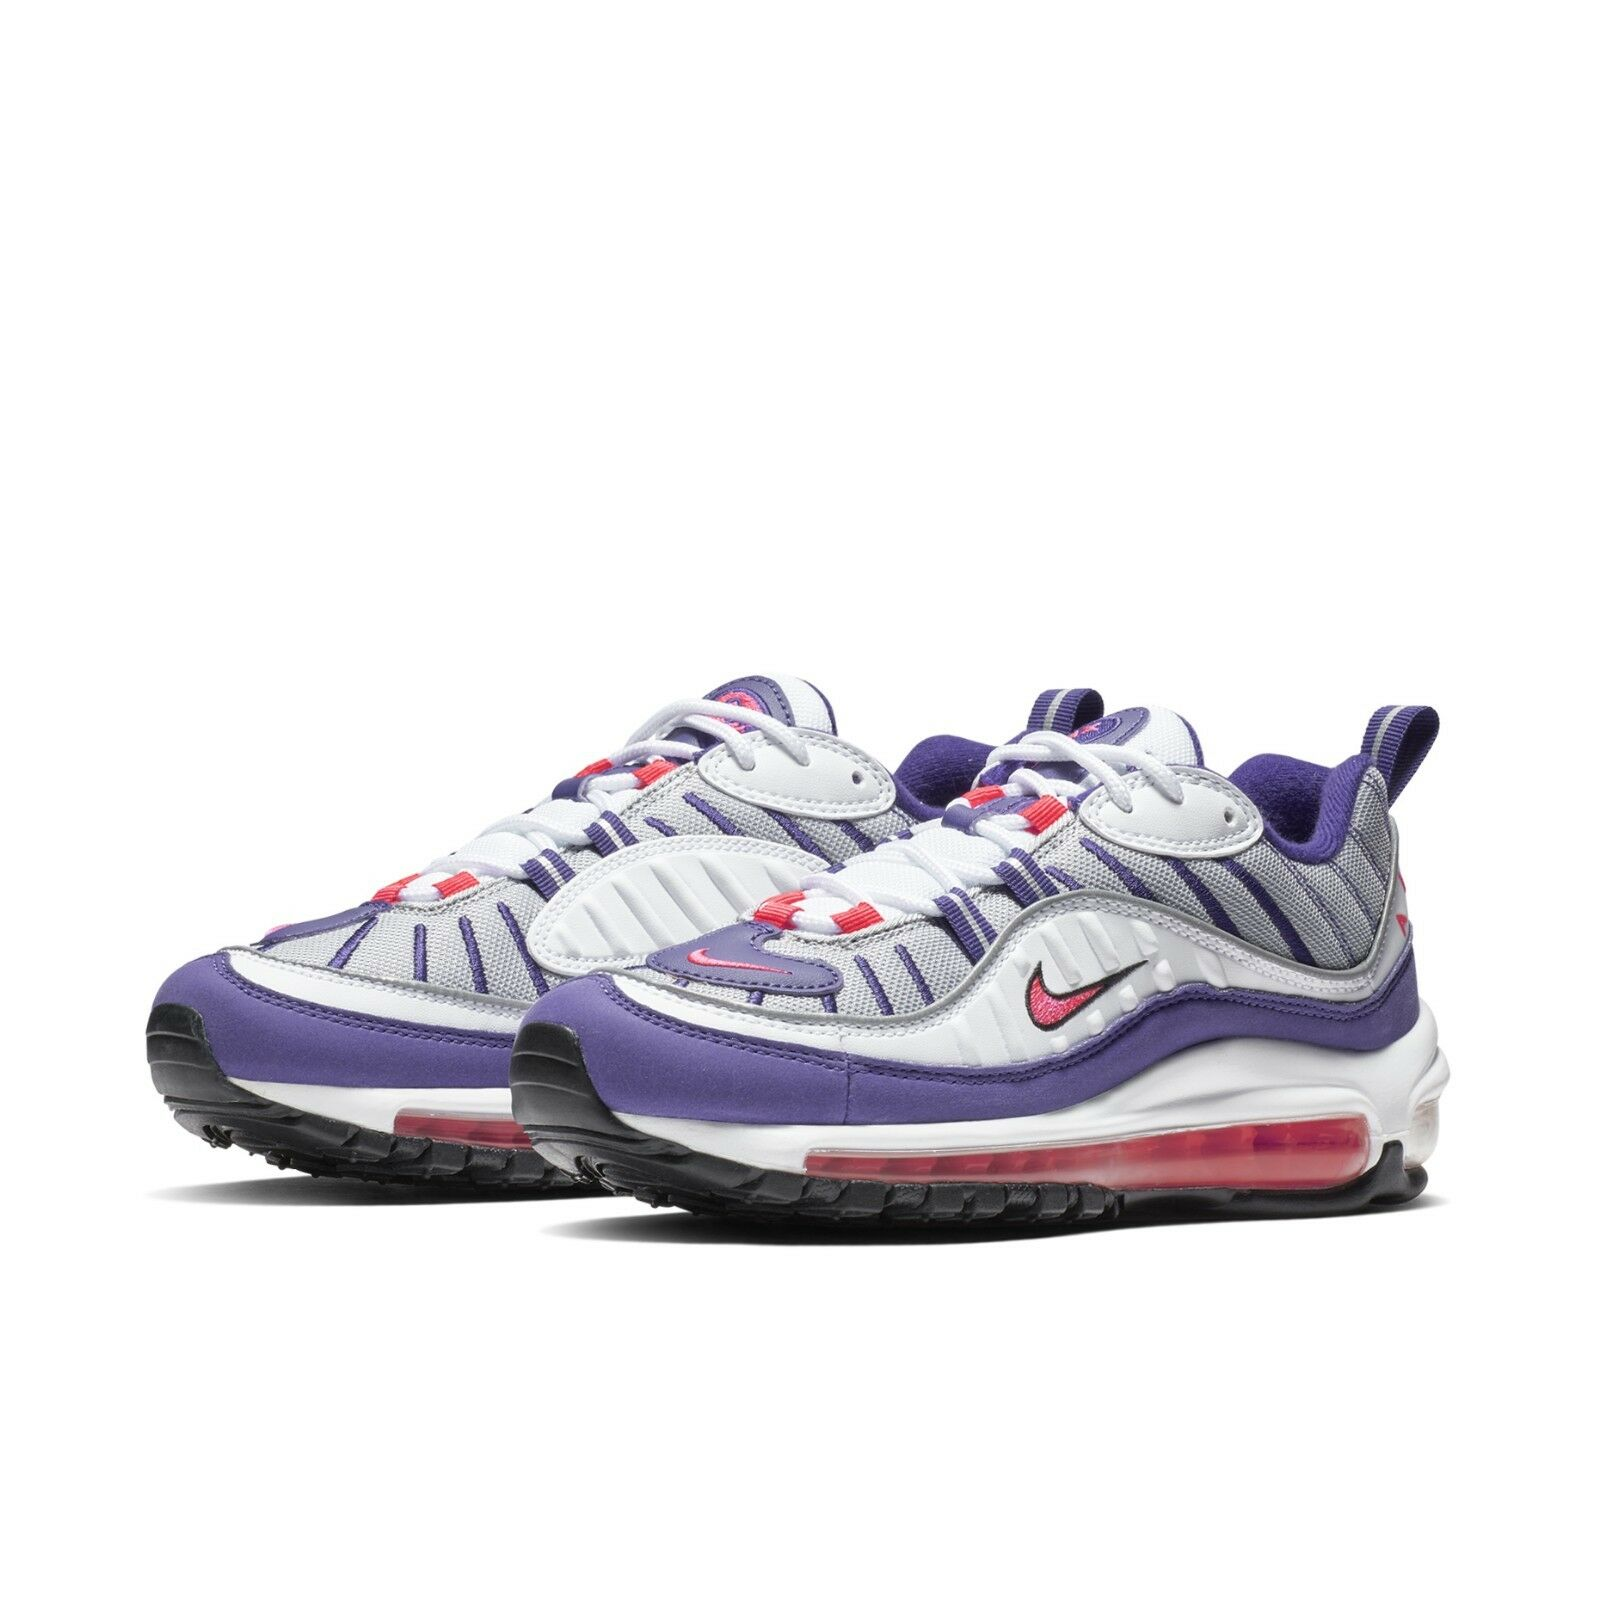 4f99e9ff378 Nike Womens Wmns Air Max 98 Raptors White Racer Pink Purple Sneakers AH6799- 110